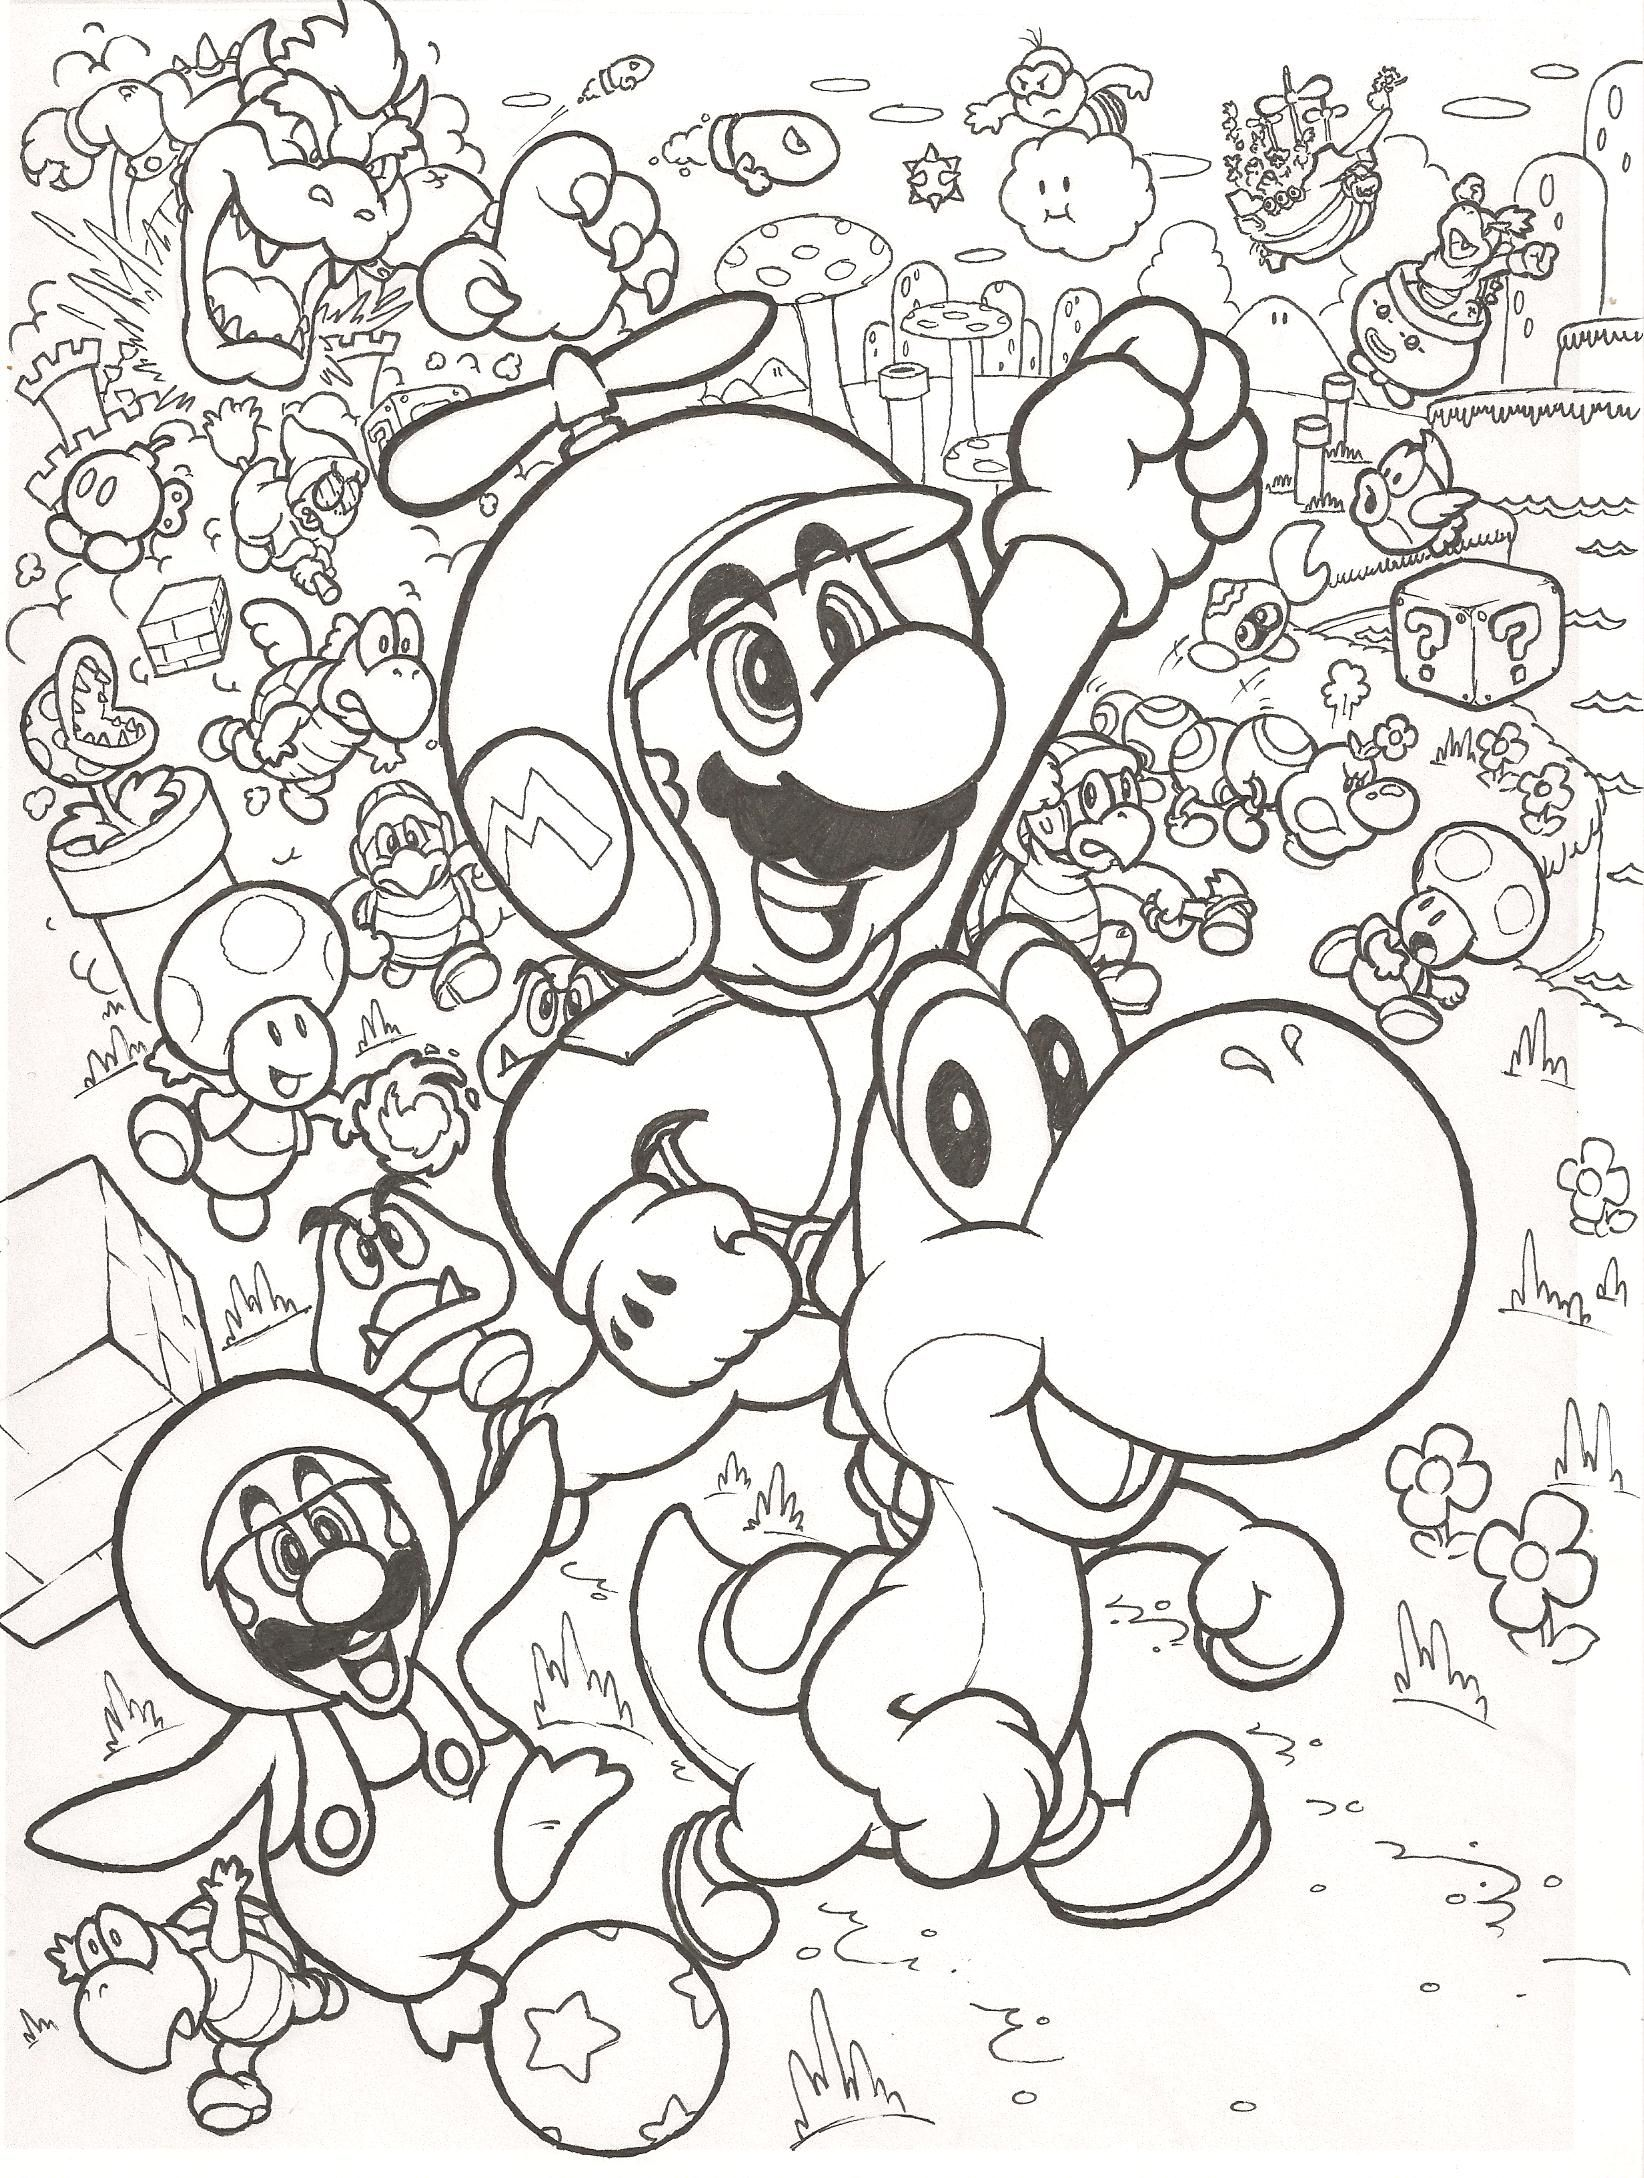 Super Mario Bros Coloring Pages Mario Coloring Pages Super